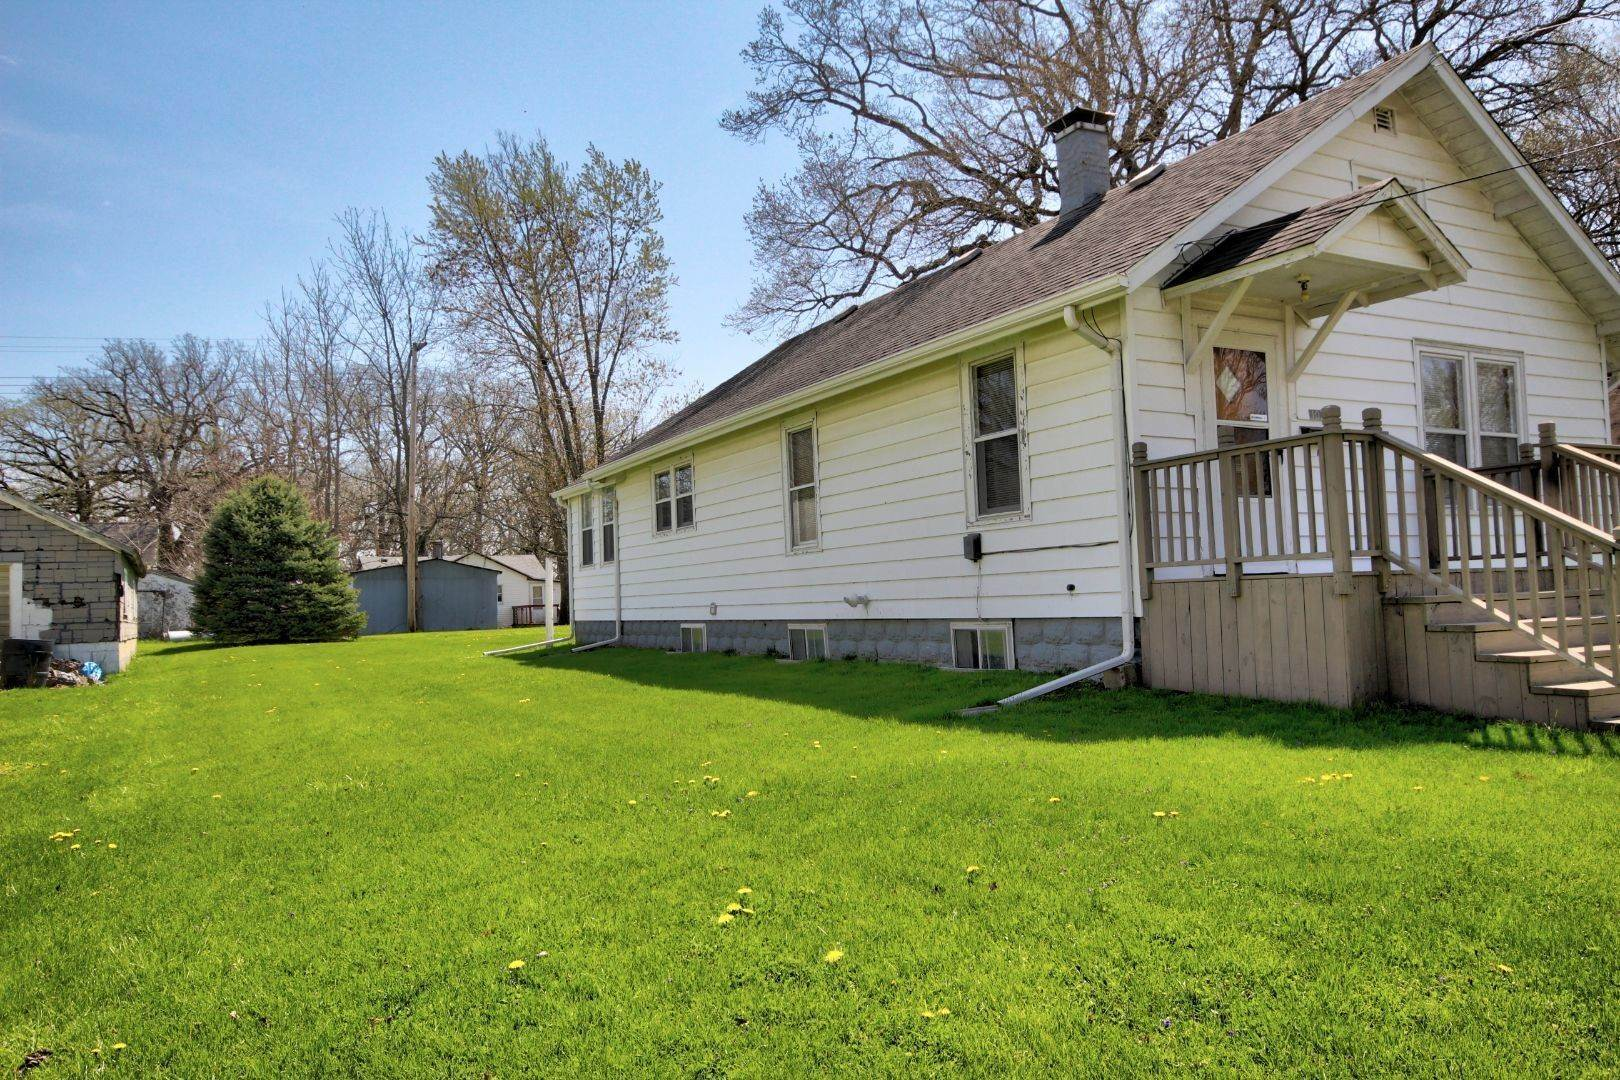 Single Family Homes for Sale at 107 S Mansfield Avenue Milford, Illinois 60953 United States